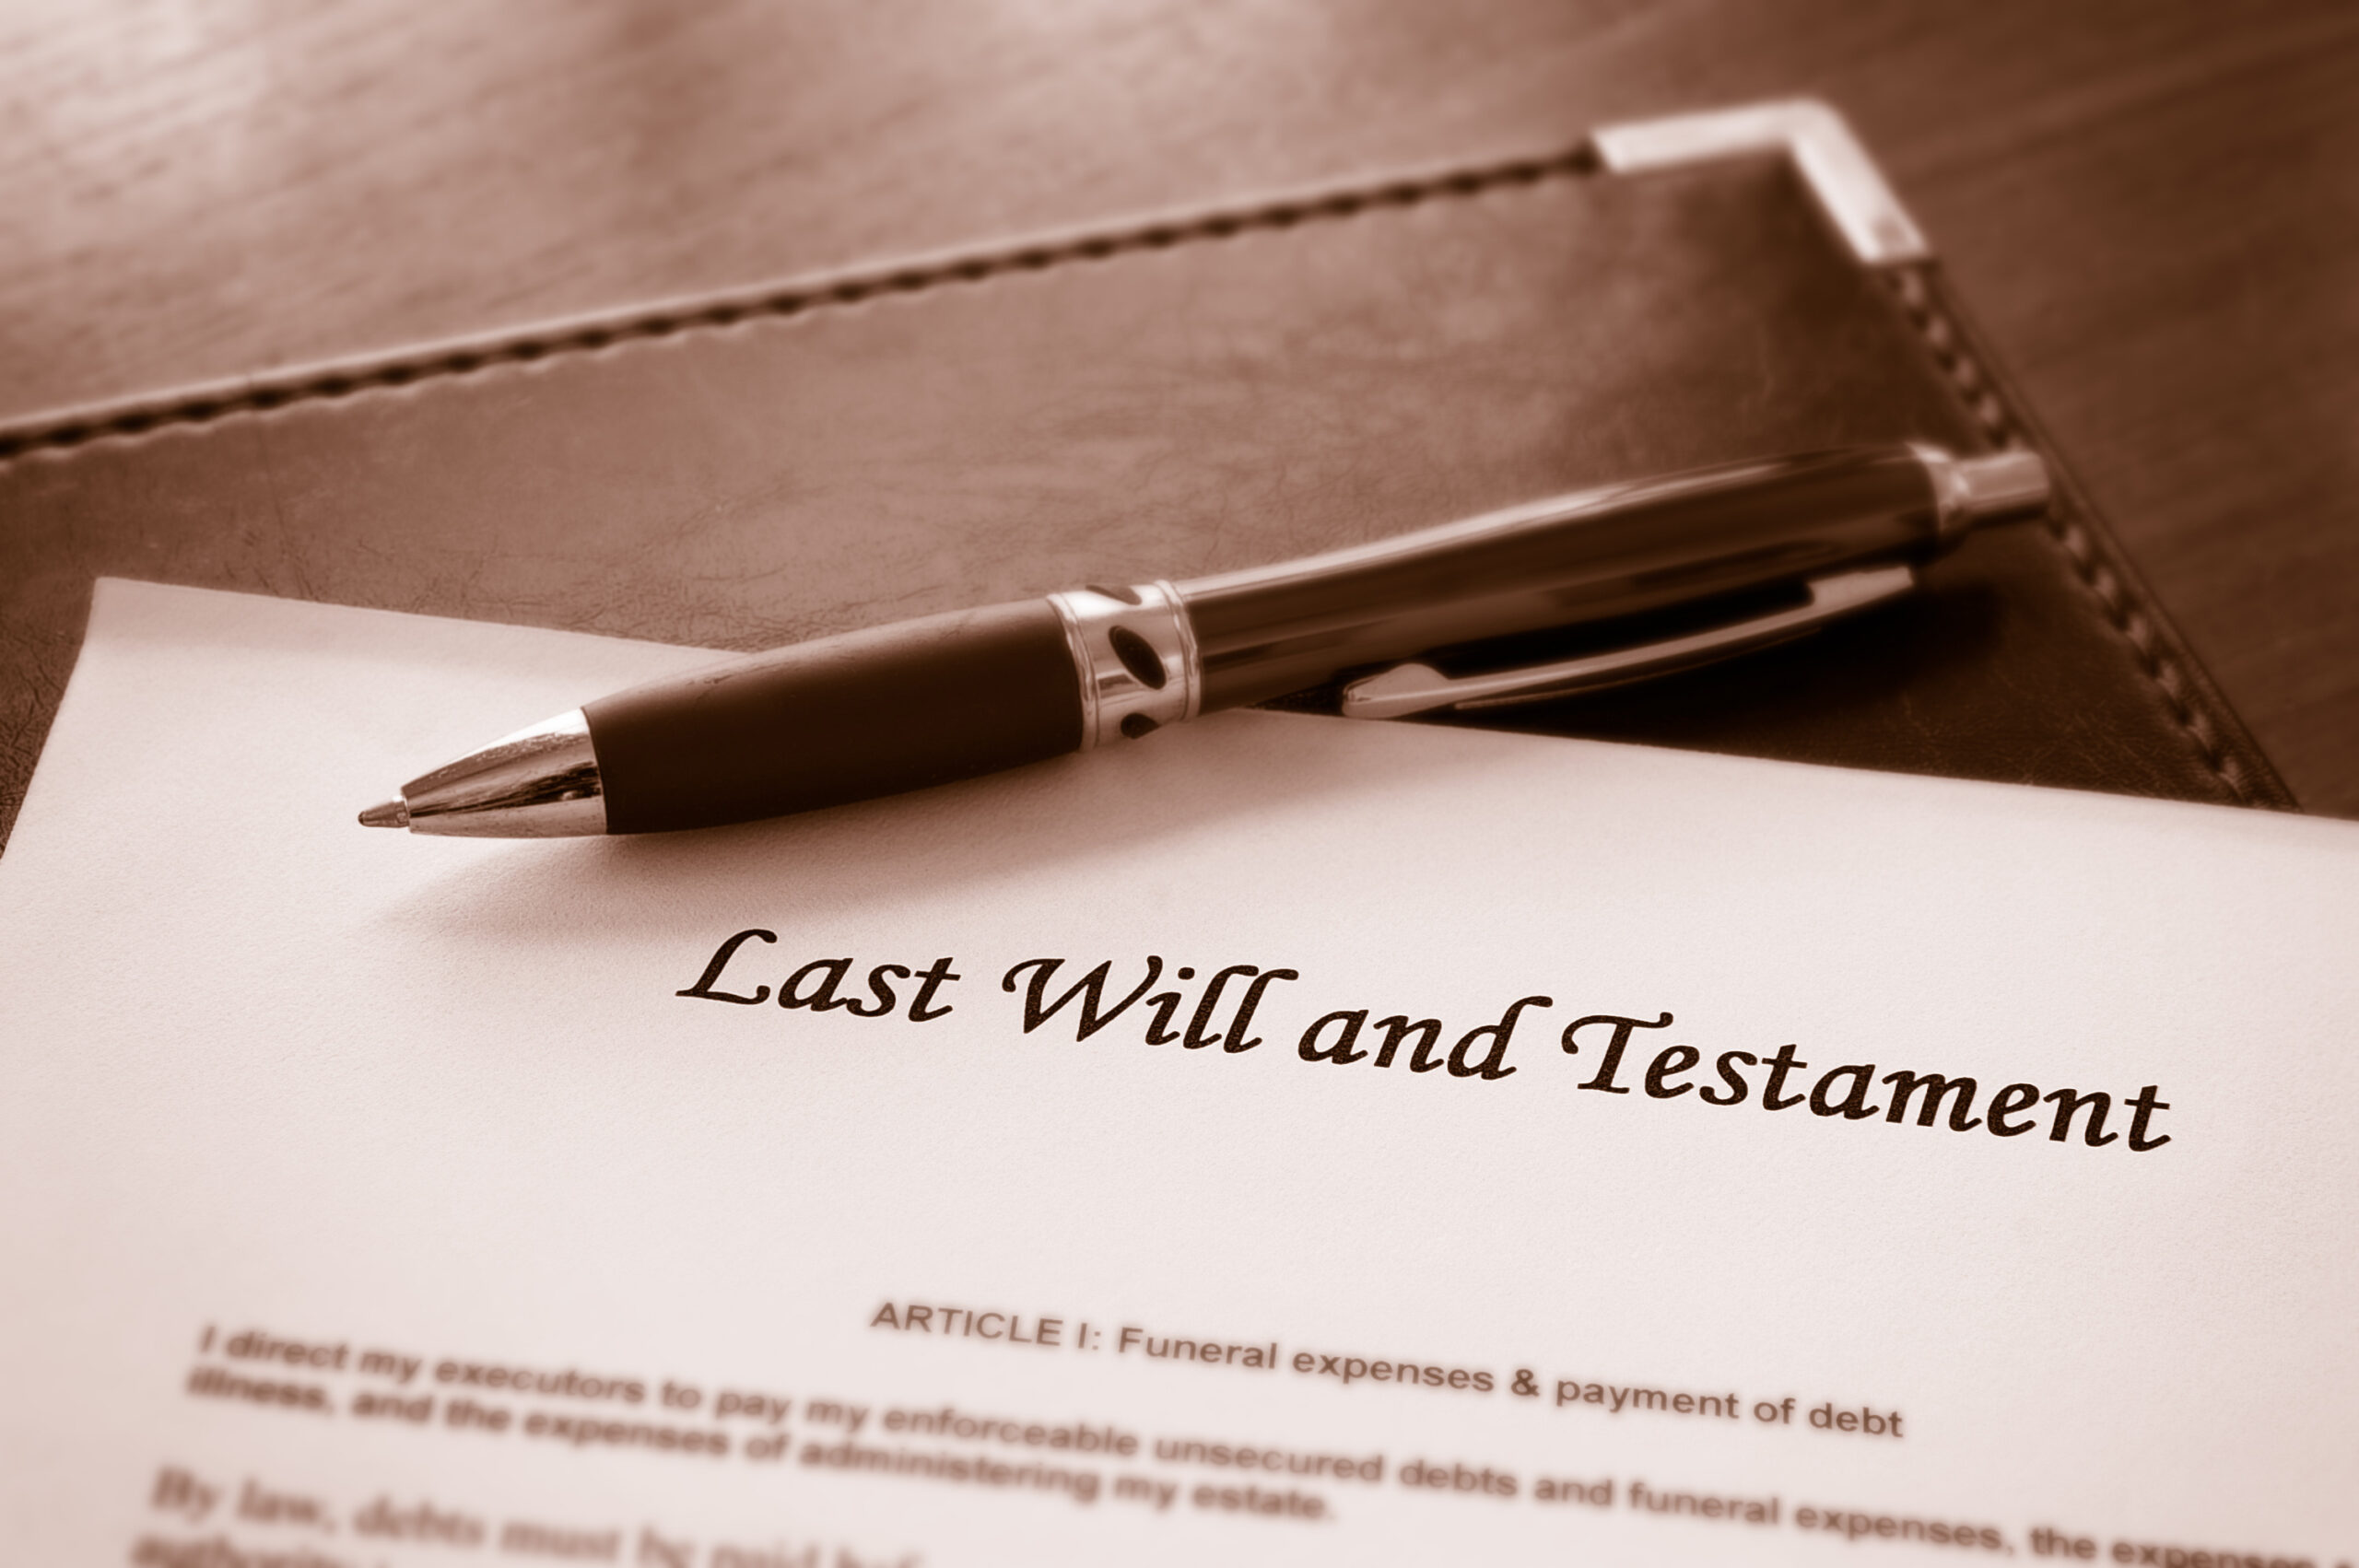 Last Will and testament document with pen